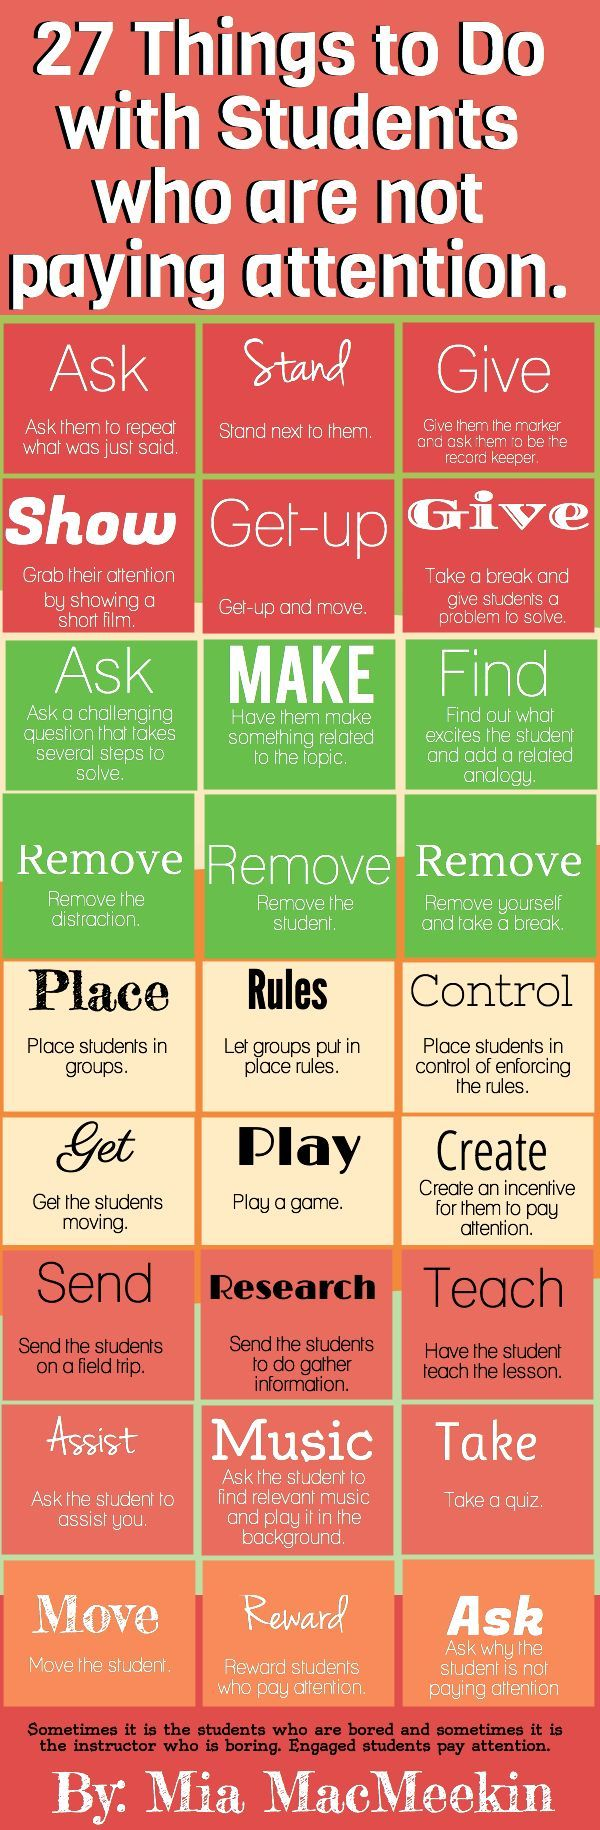 27 things to do with students who don't pay attention Repinned by SOS Inc. Resources http://pinterest.com/sostherapy.